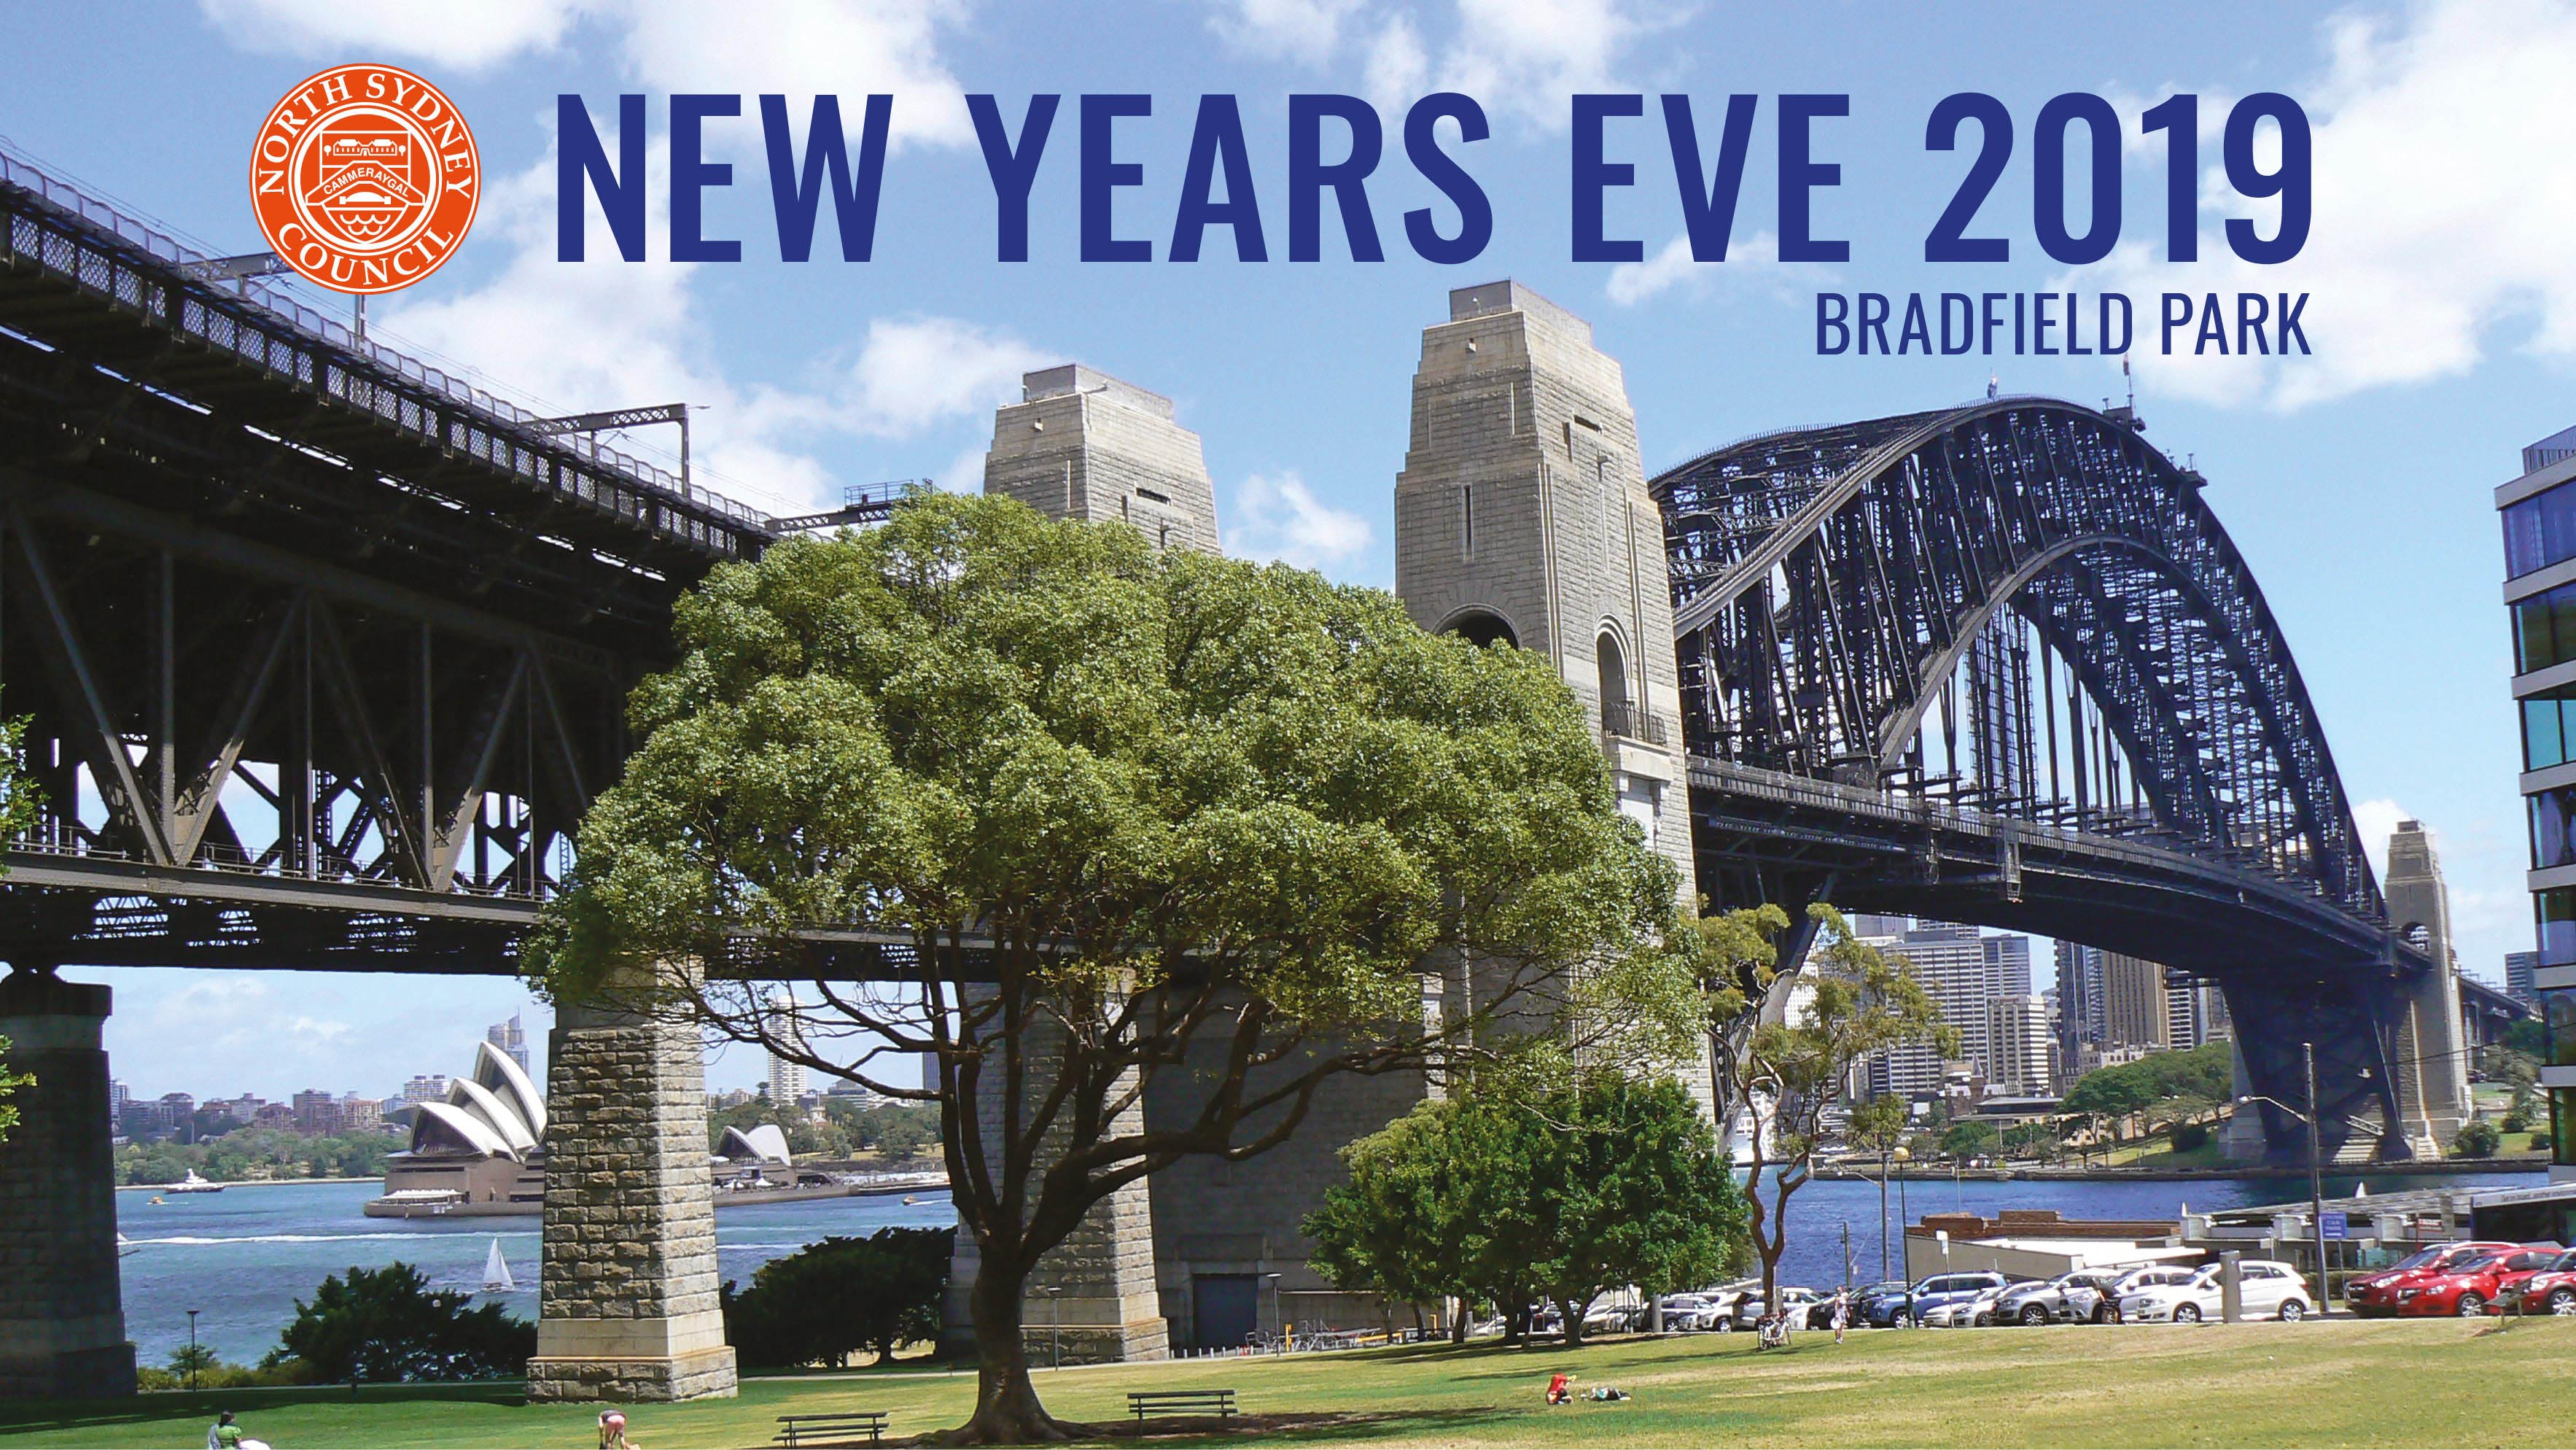 Tickets for New Years Eve at Bradfield Park in North Sydney from Ticketbooth